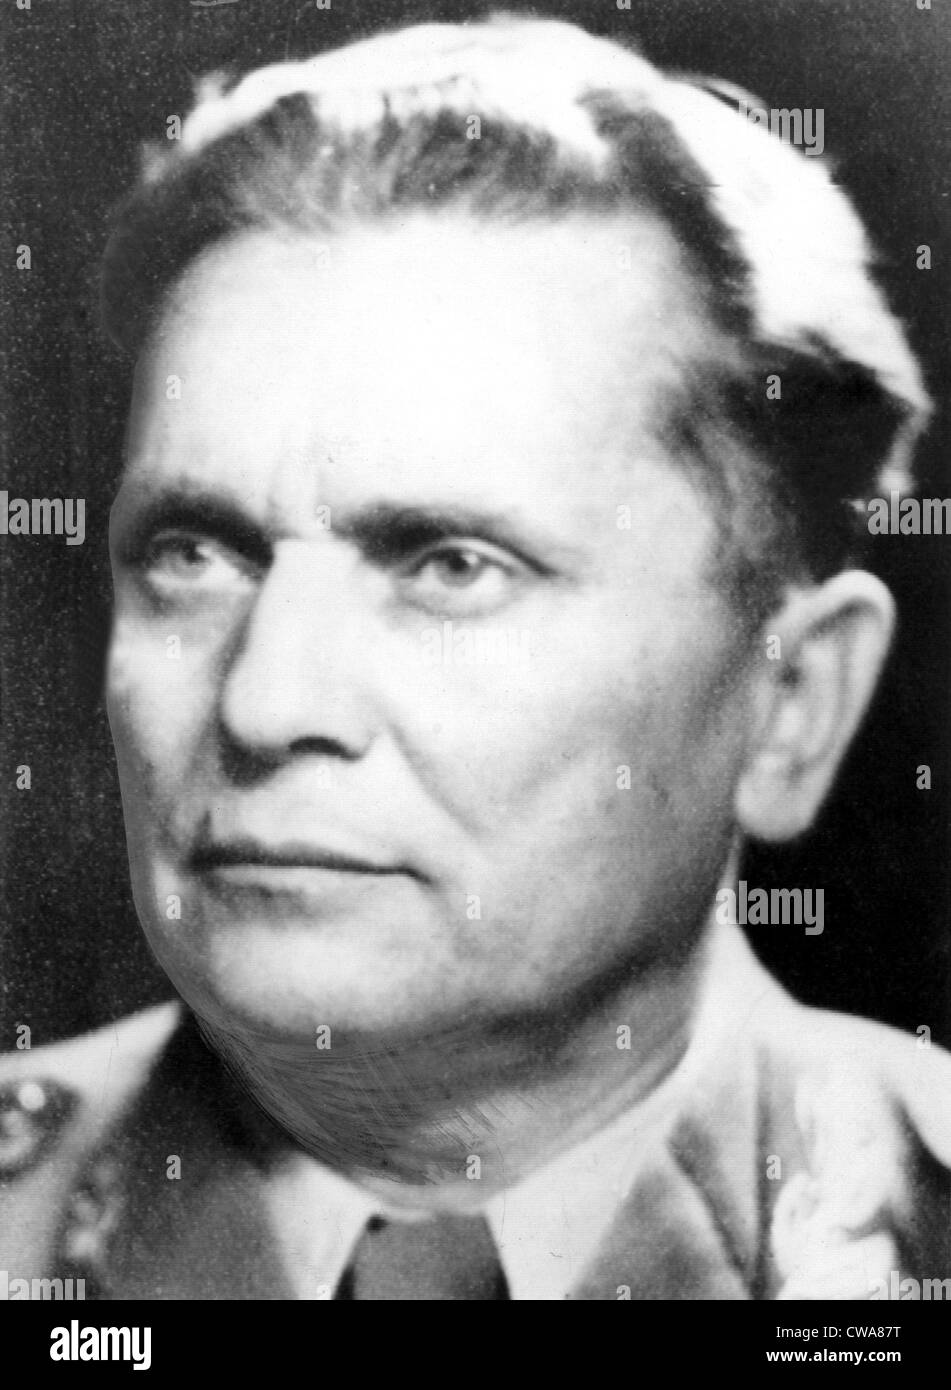 MARSHAL JOSIP BROZ TITO of Yugoslavia in the early   1950's.. Courtesy: CSU Archives / Everett Collection - Stock Image